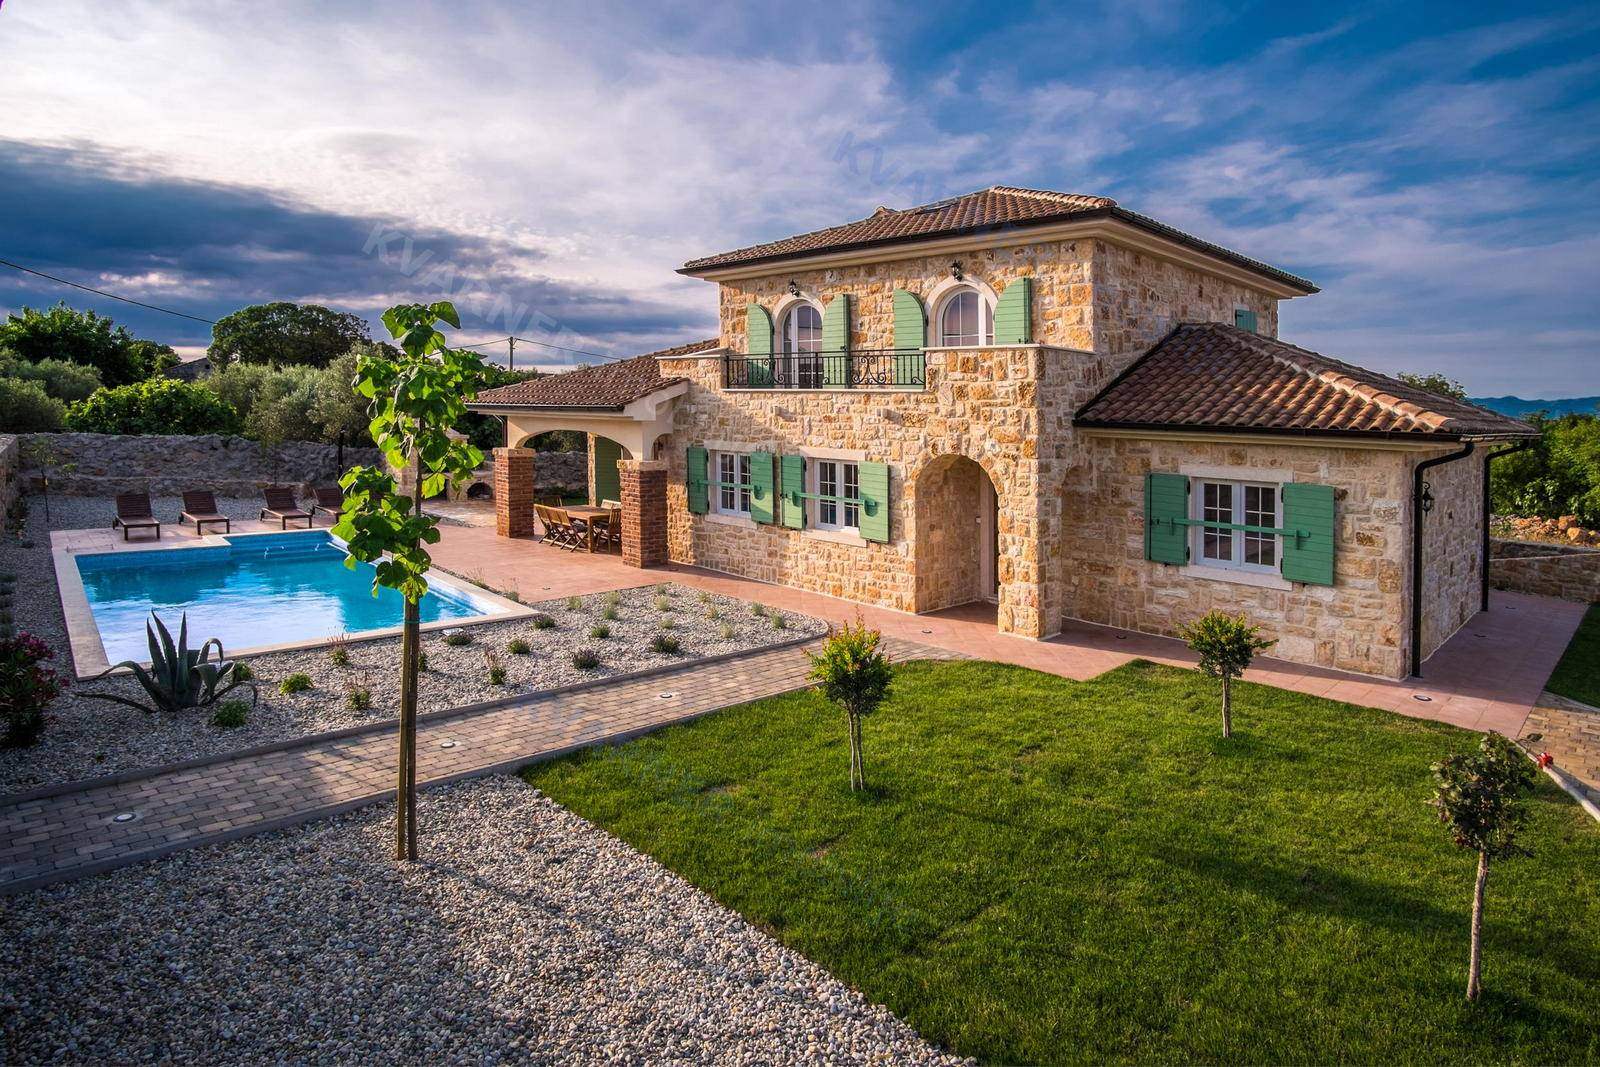 Krk - Luxury stone villa with pool | Kvarner imobilije